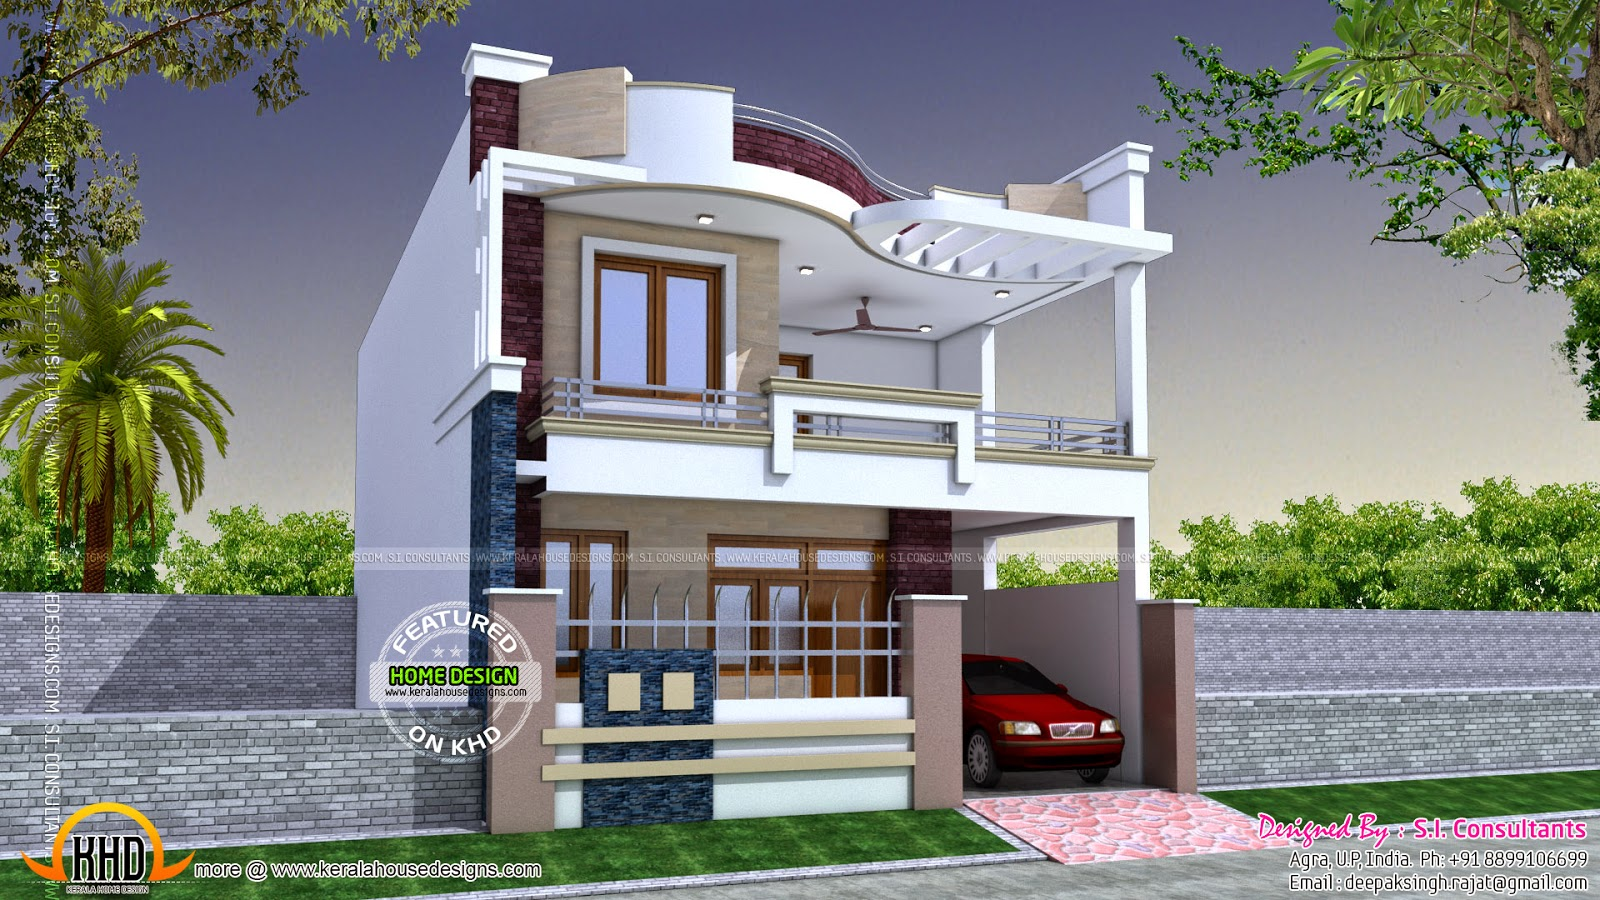 Modern indian home design kerala home design and floor plans In home design